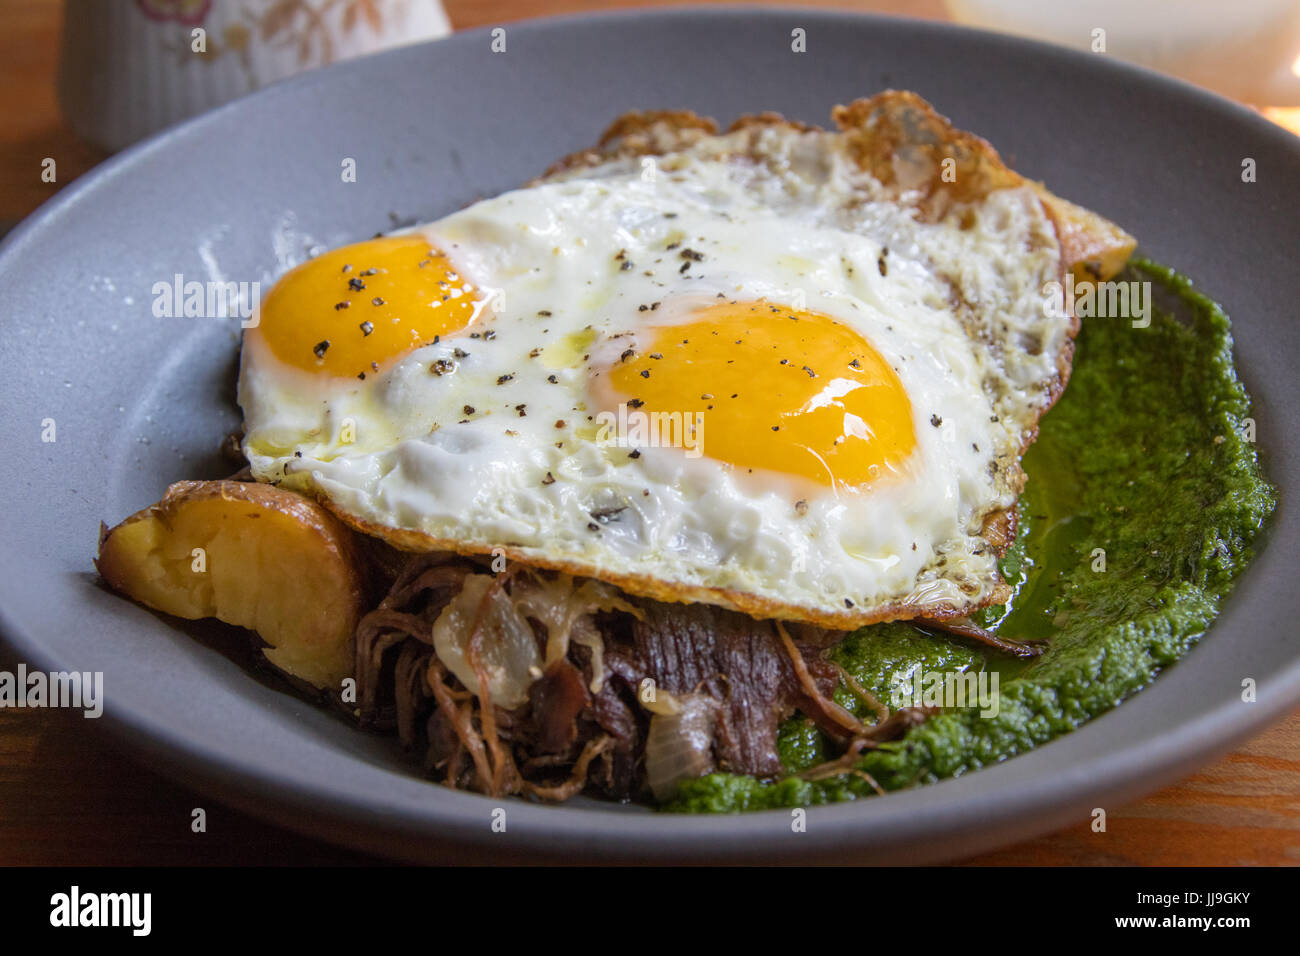 Grass fed beef hash at Hearth restaurant, East Village, New York - Stock Image